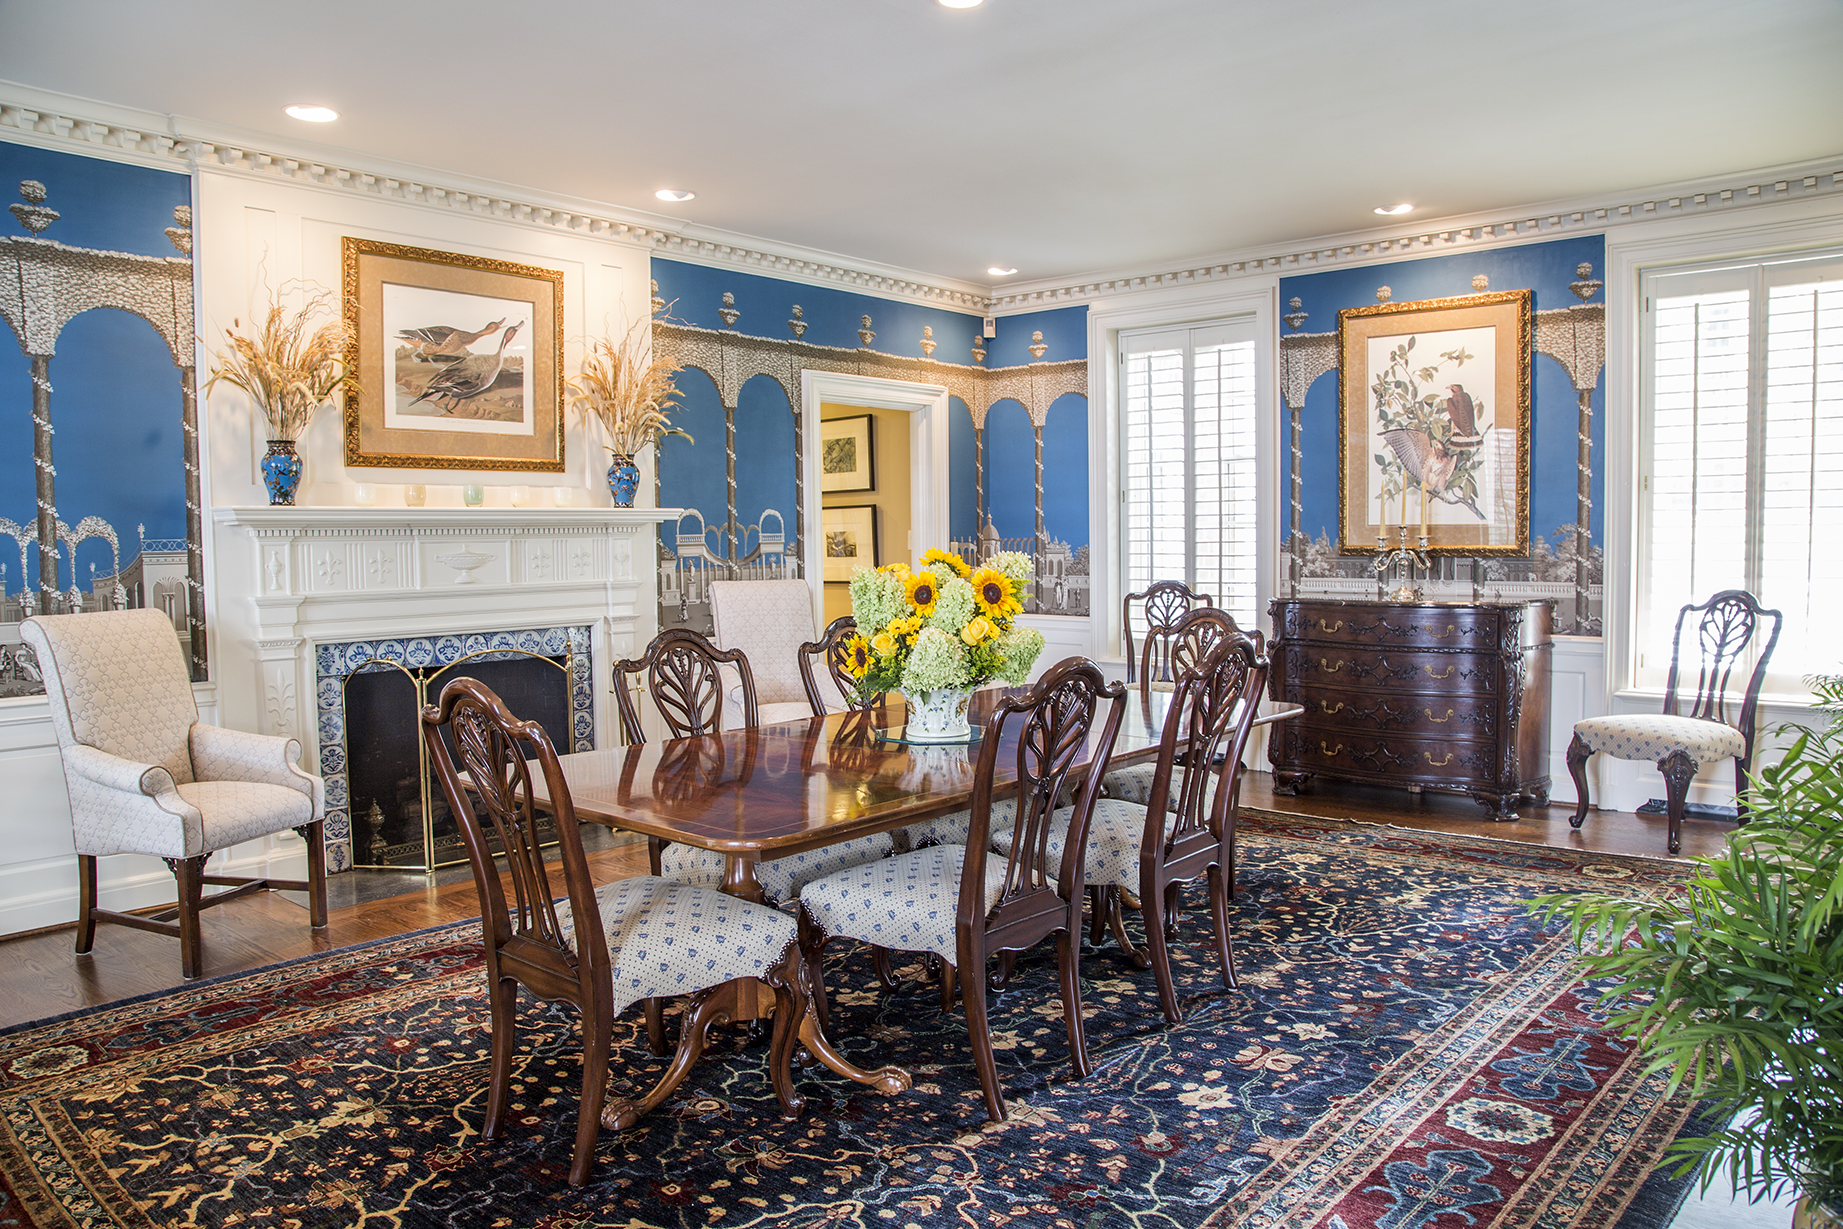 Much of the dining room is original including the wallpaper with its silk-screened scenes that contrast the bright cobalt chalked background. Dusky Duck (1859), a Chromolithograph by American naturalist John James Audubon, sits above the original blue tile framed fireplace.